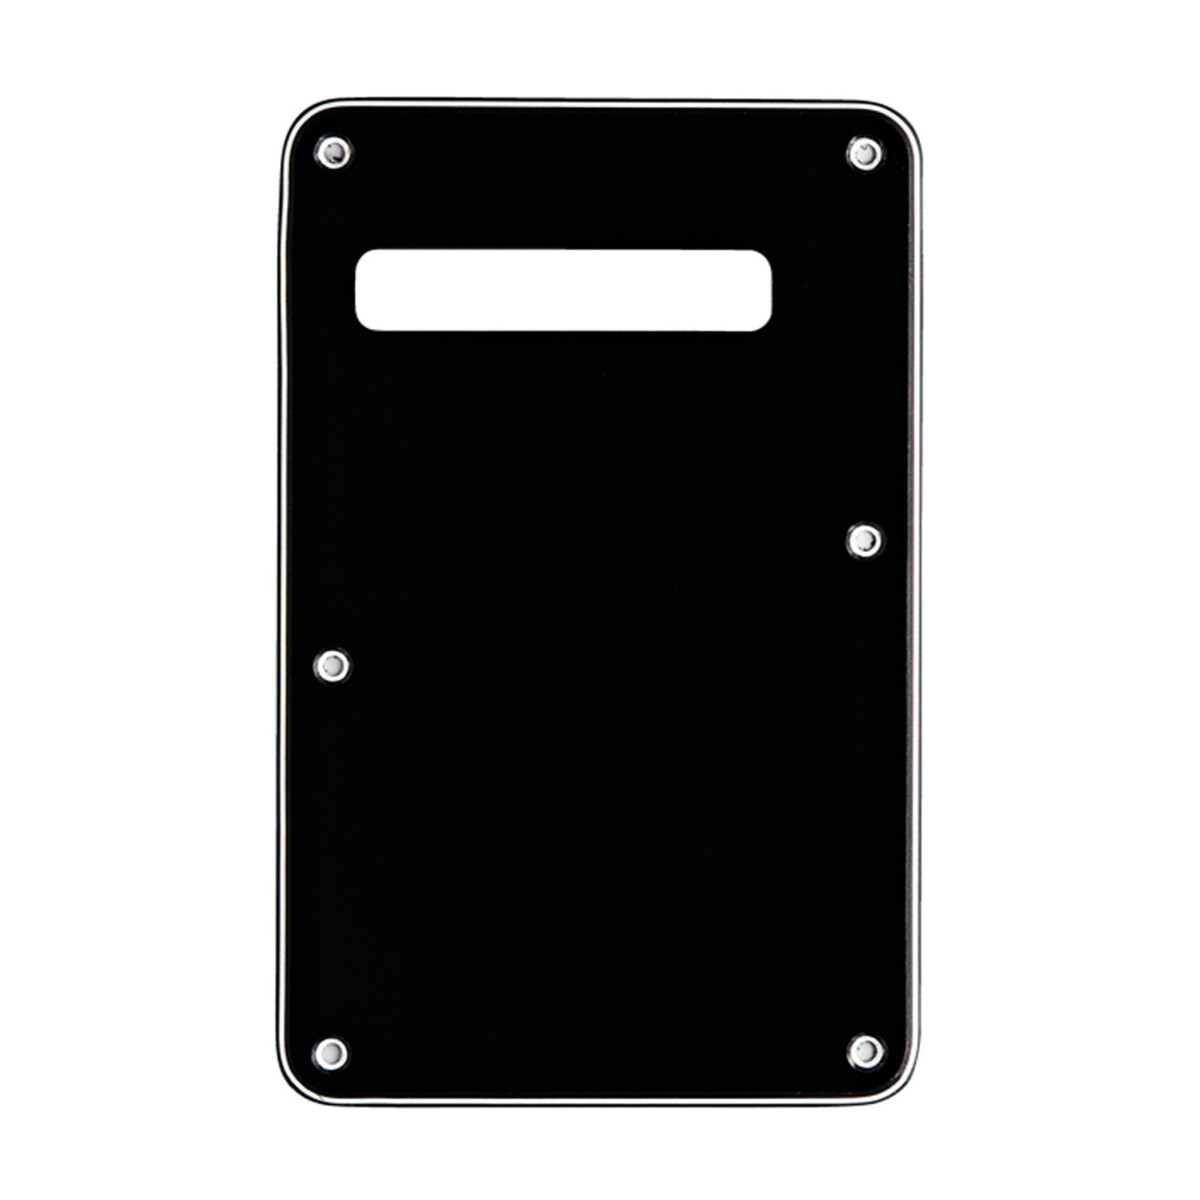 Brio Black Modern Style Back Plate Tremolo Cover 3 ply - US/Mexican Fender®Strat® Fit